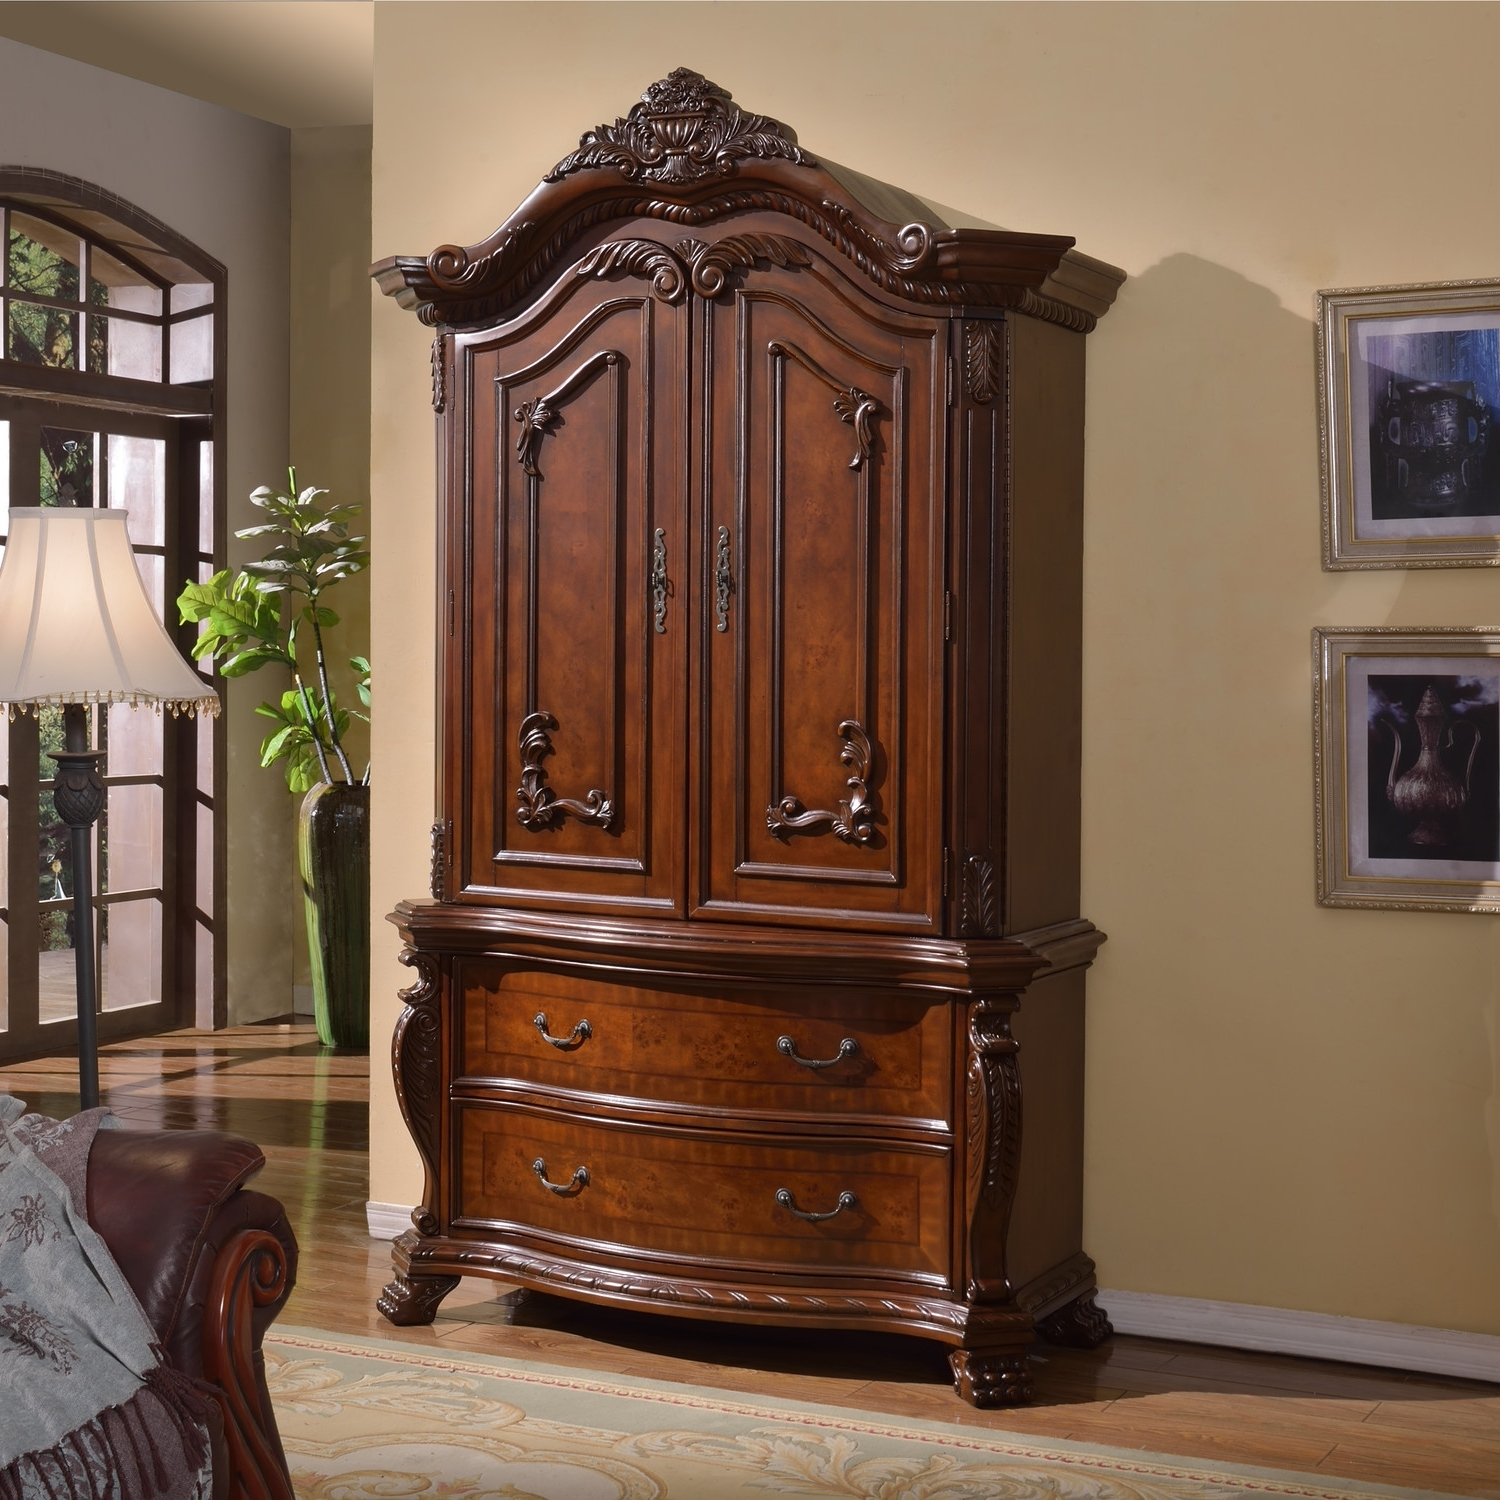 Fashionable Bedroom: Antique Interior Storage Design With Wardrobe Armoire Intended For Black Wood Wardrobes (View 6 of 15)